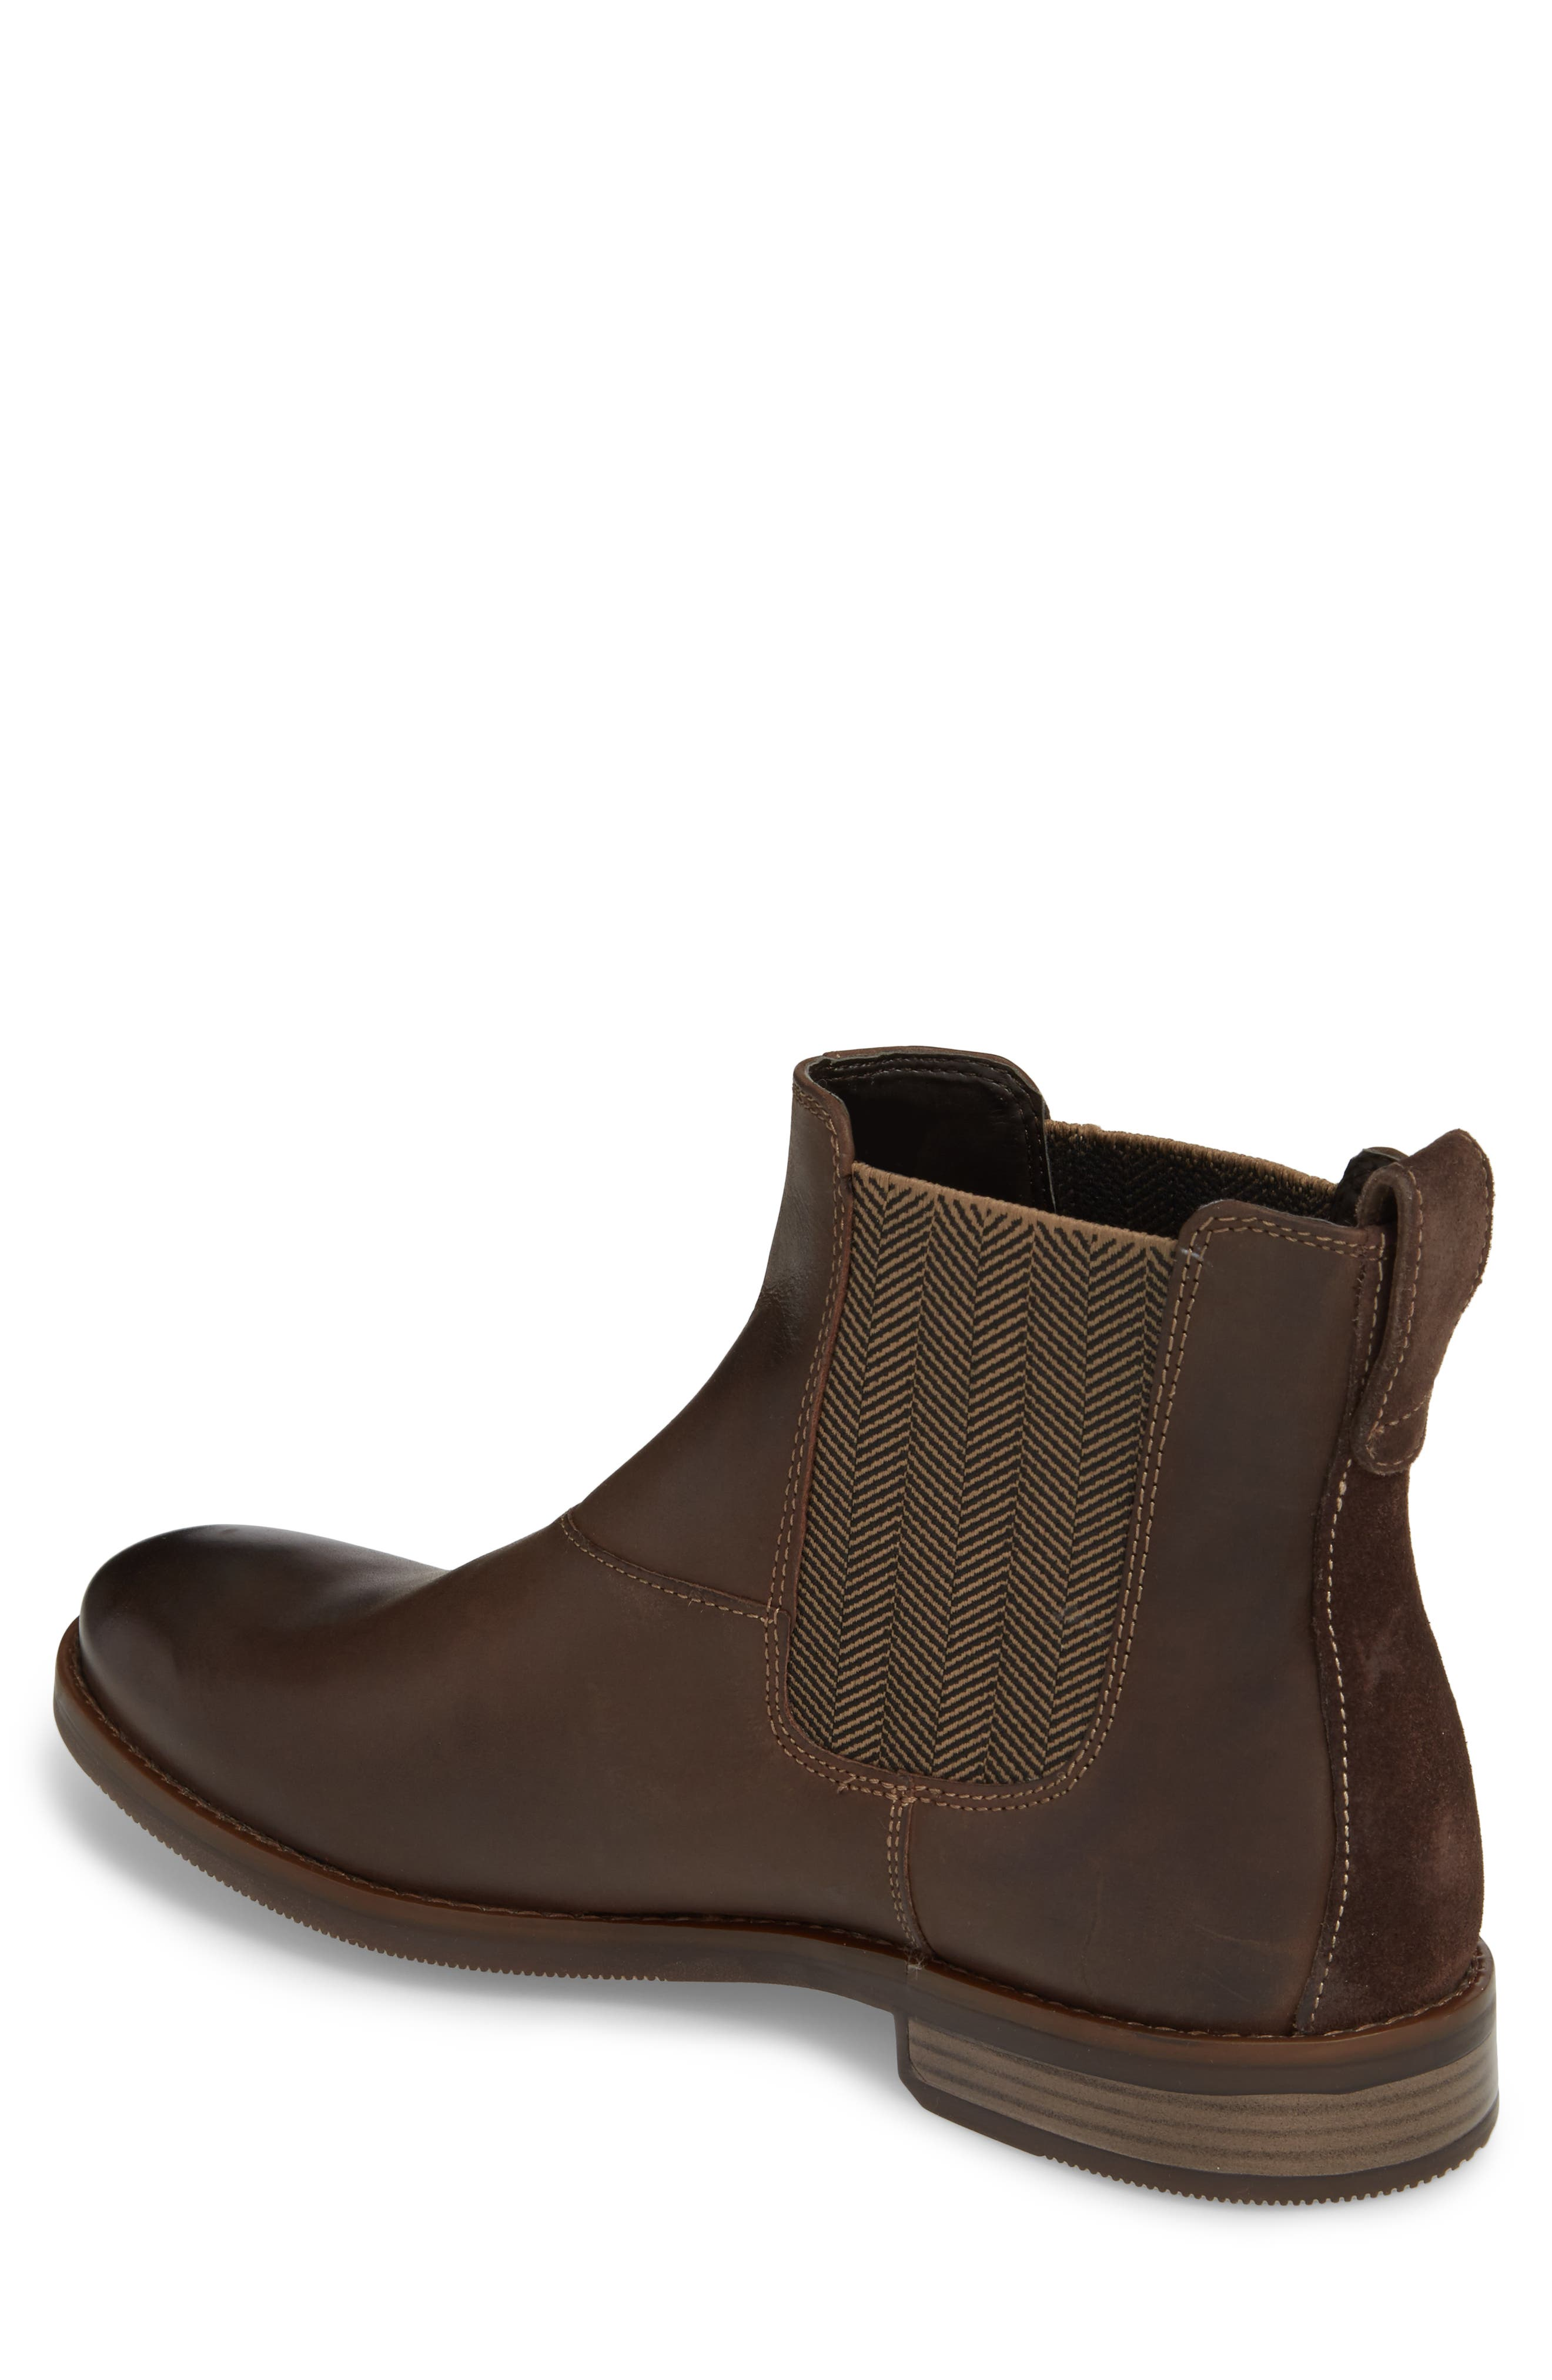 Wynstin Chelsea Boot,                             Alternate thumbnail 2, color,                             DARK BITTER CHOCOLATE LEATHER